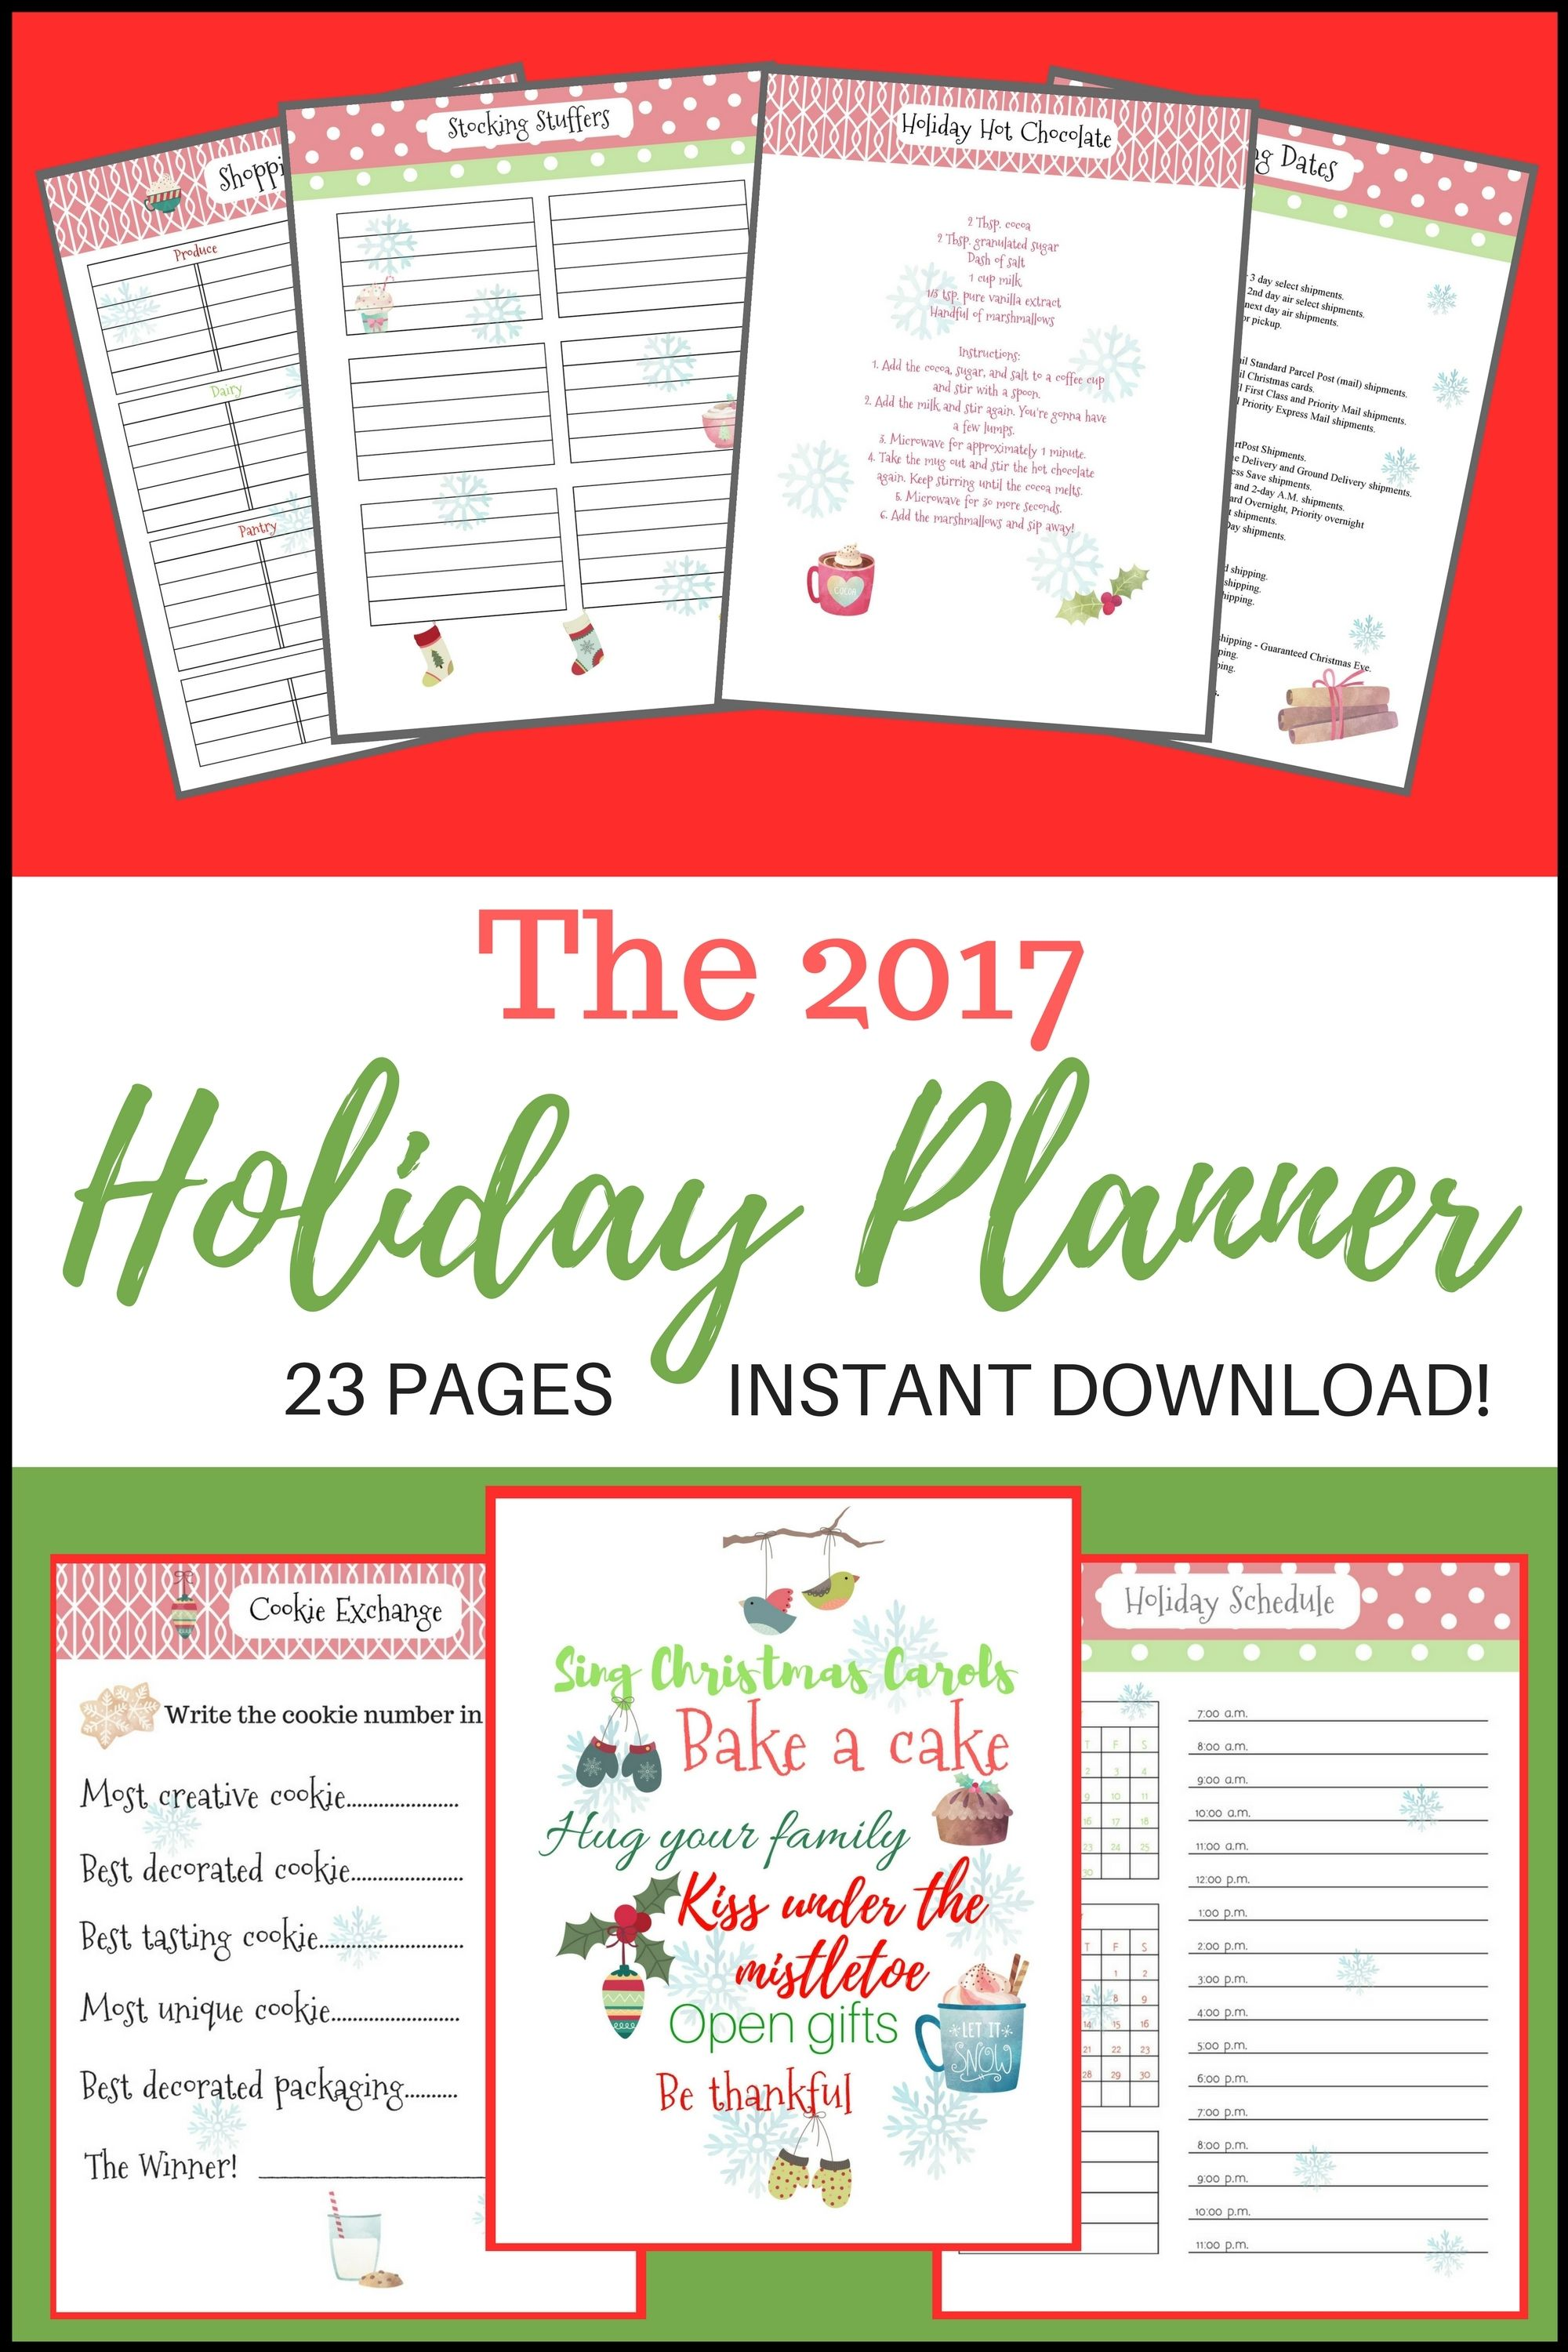 Holiday Planner - Schedule Calendar, Christmas Shopping List And Holiday